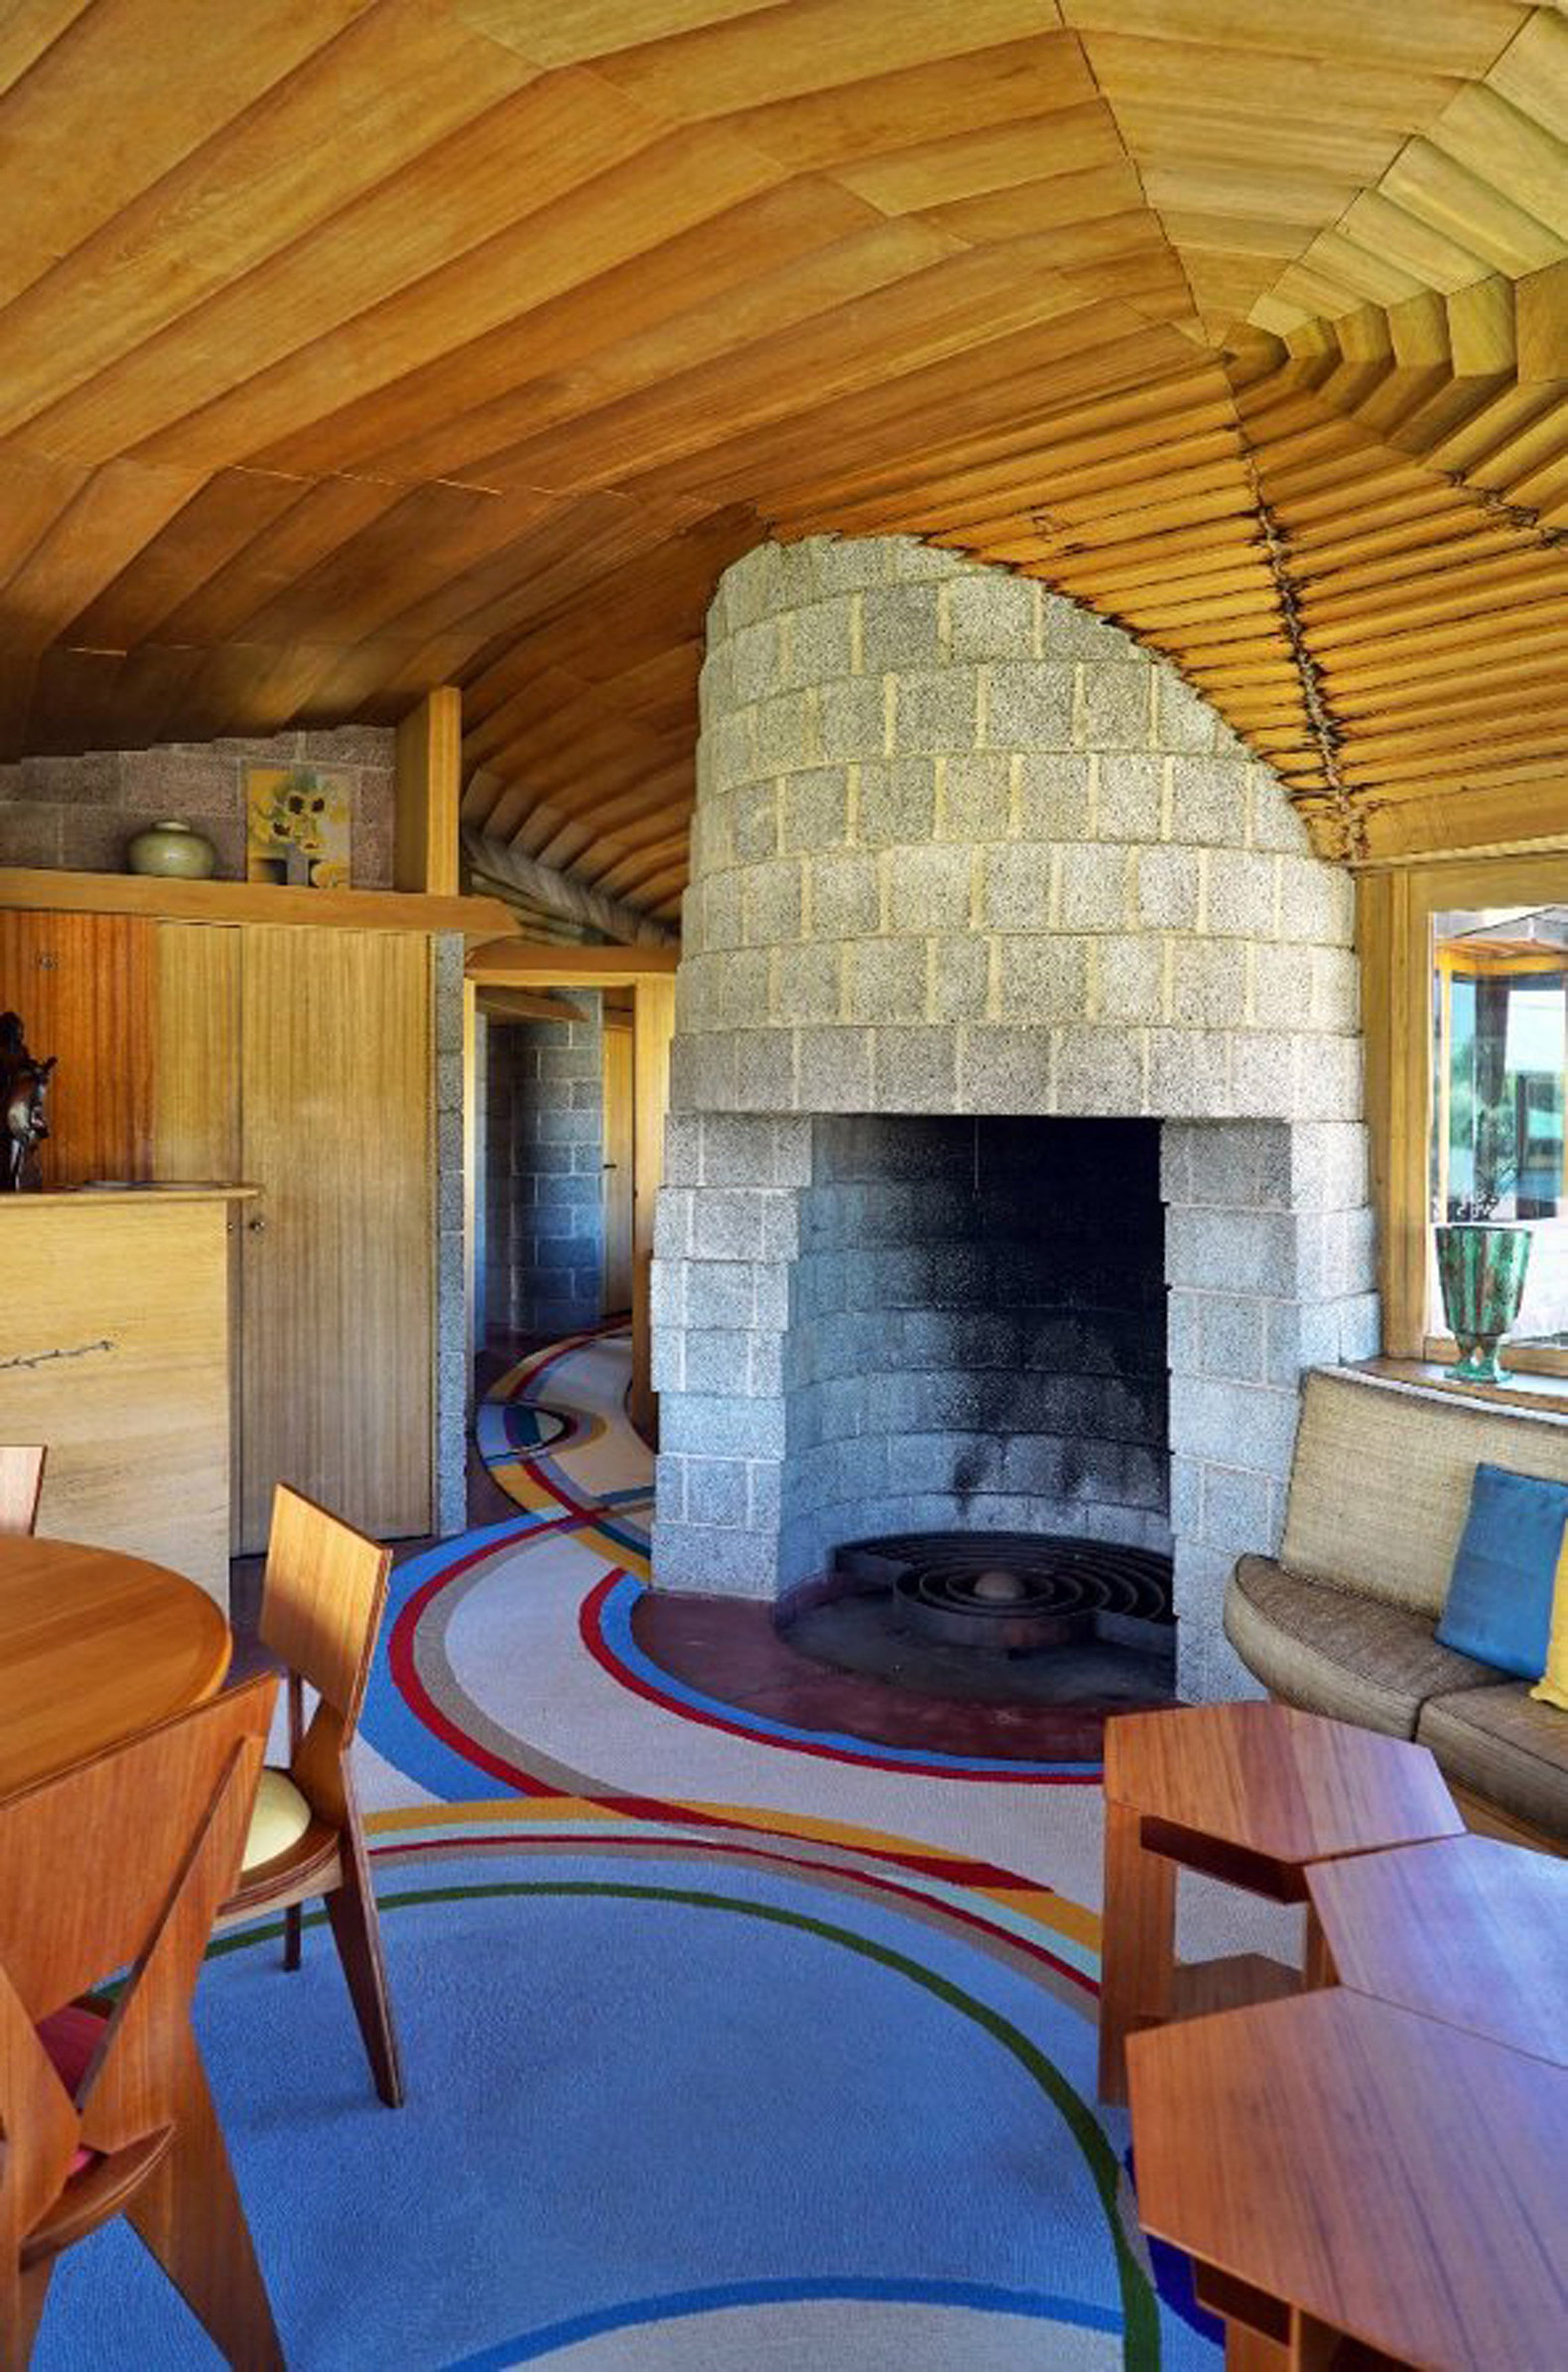 Frank Lloyd Wright house in Phoenix donated to Taliesin